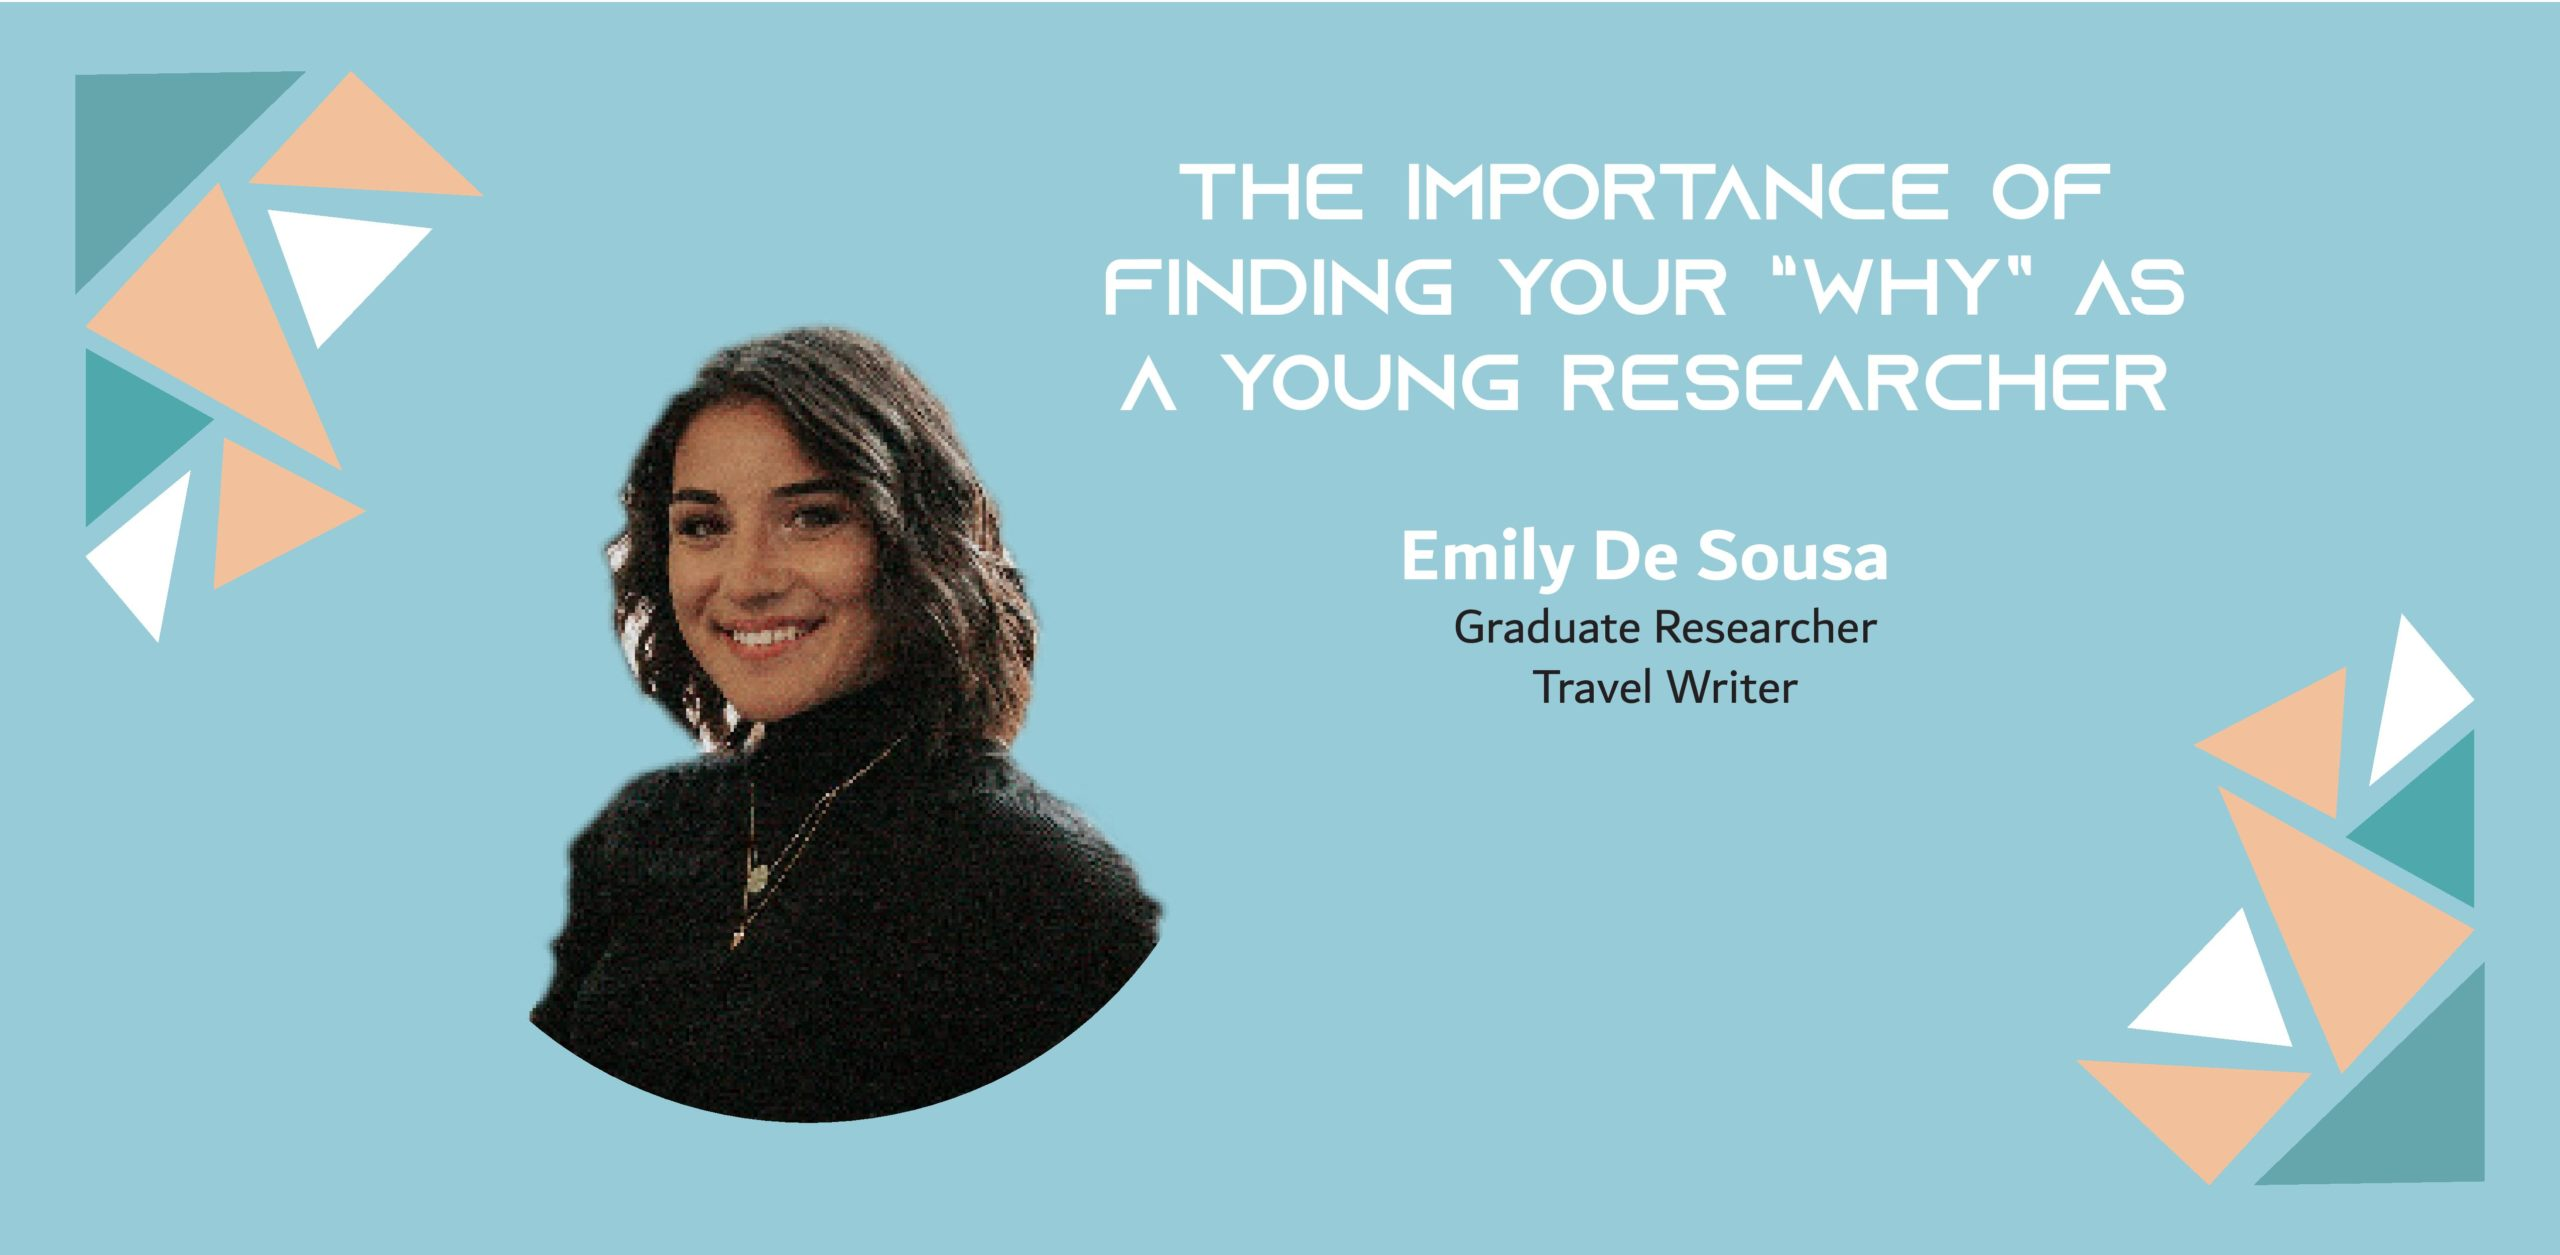 """Image of a woman on a blue background with the text: """"The importance of finding your """"why"""" as a young researcher Emily de Sousa, Graduate Researcher, Travel Writer"""""""